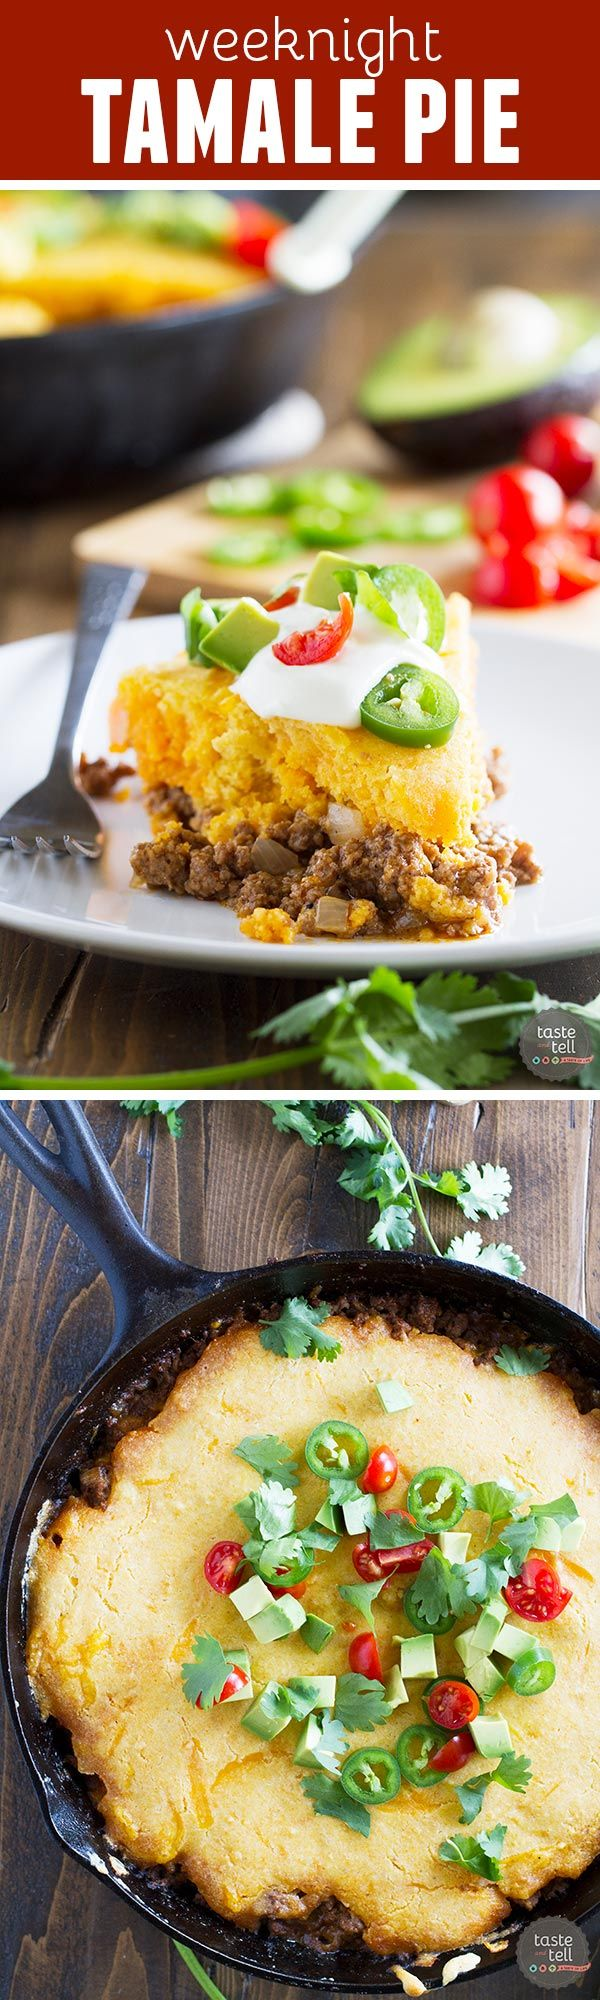 This easy, one skillet Weeknight Tamale Pie Recipe is warm and comforting and super easy. And it's a bonus that it's all made in one skillet!